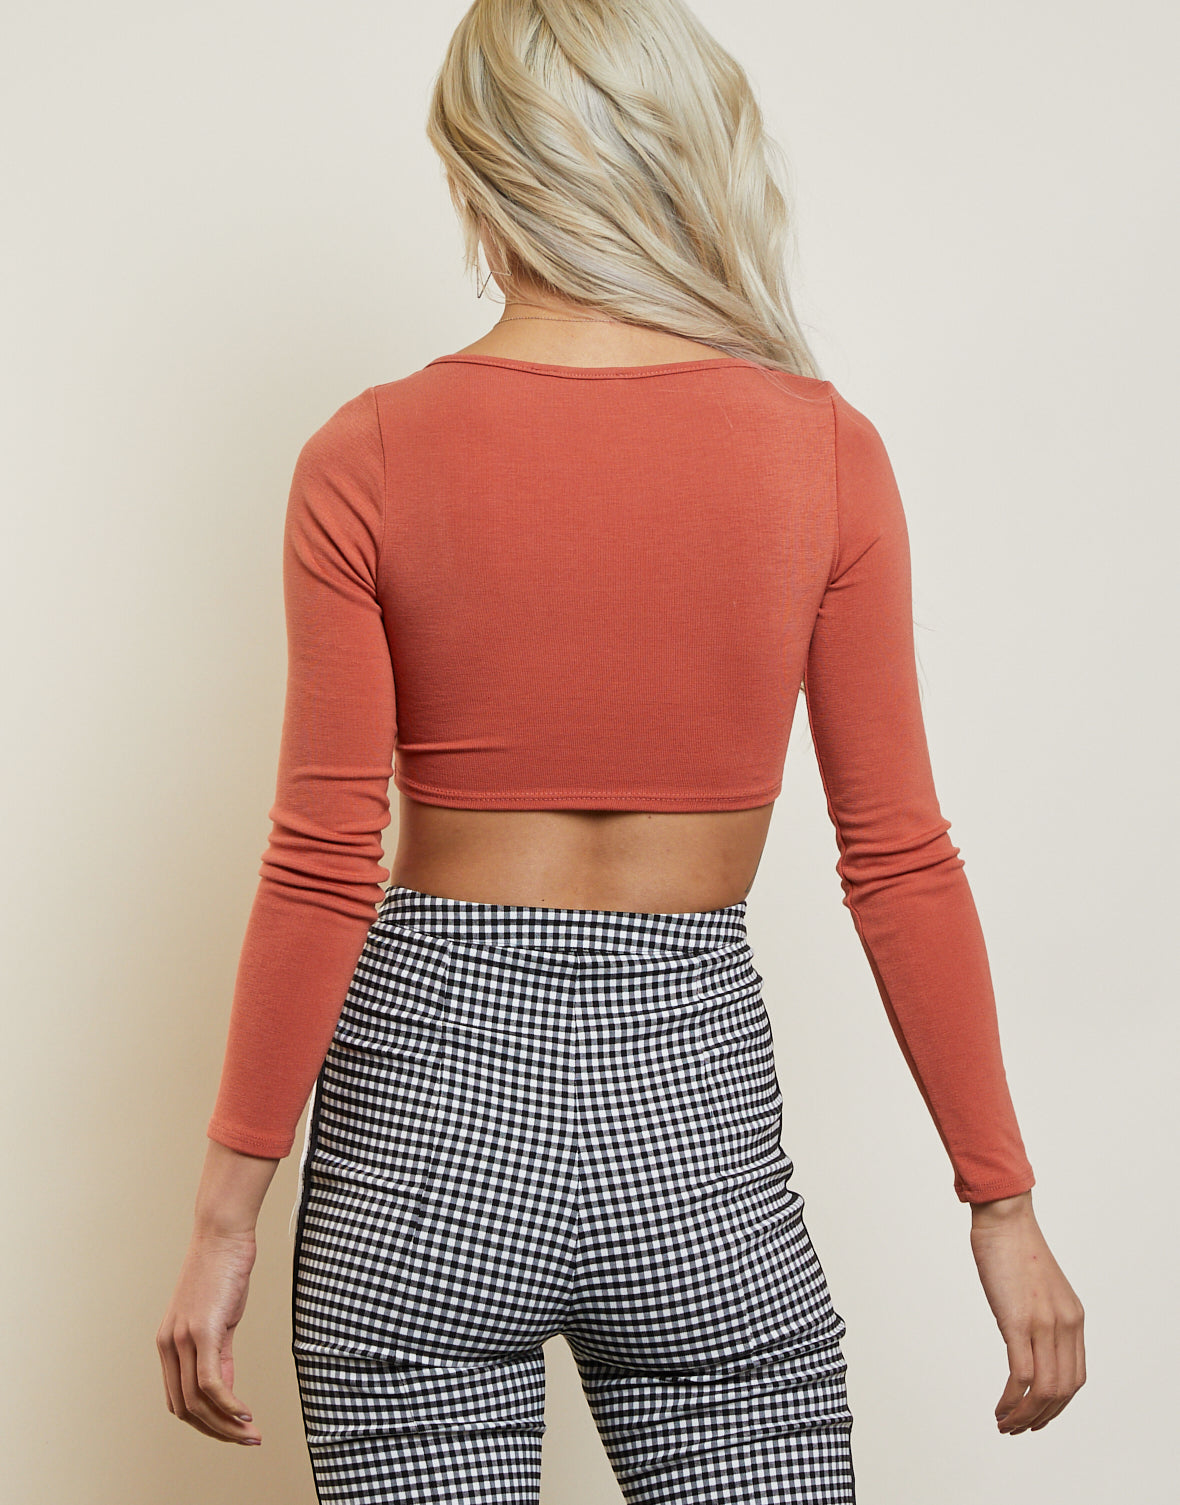 Back To Square 1 Crop Top